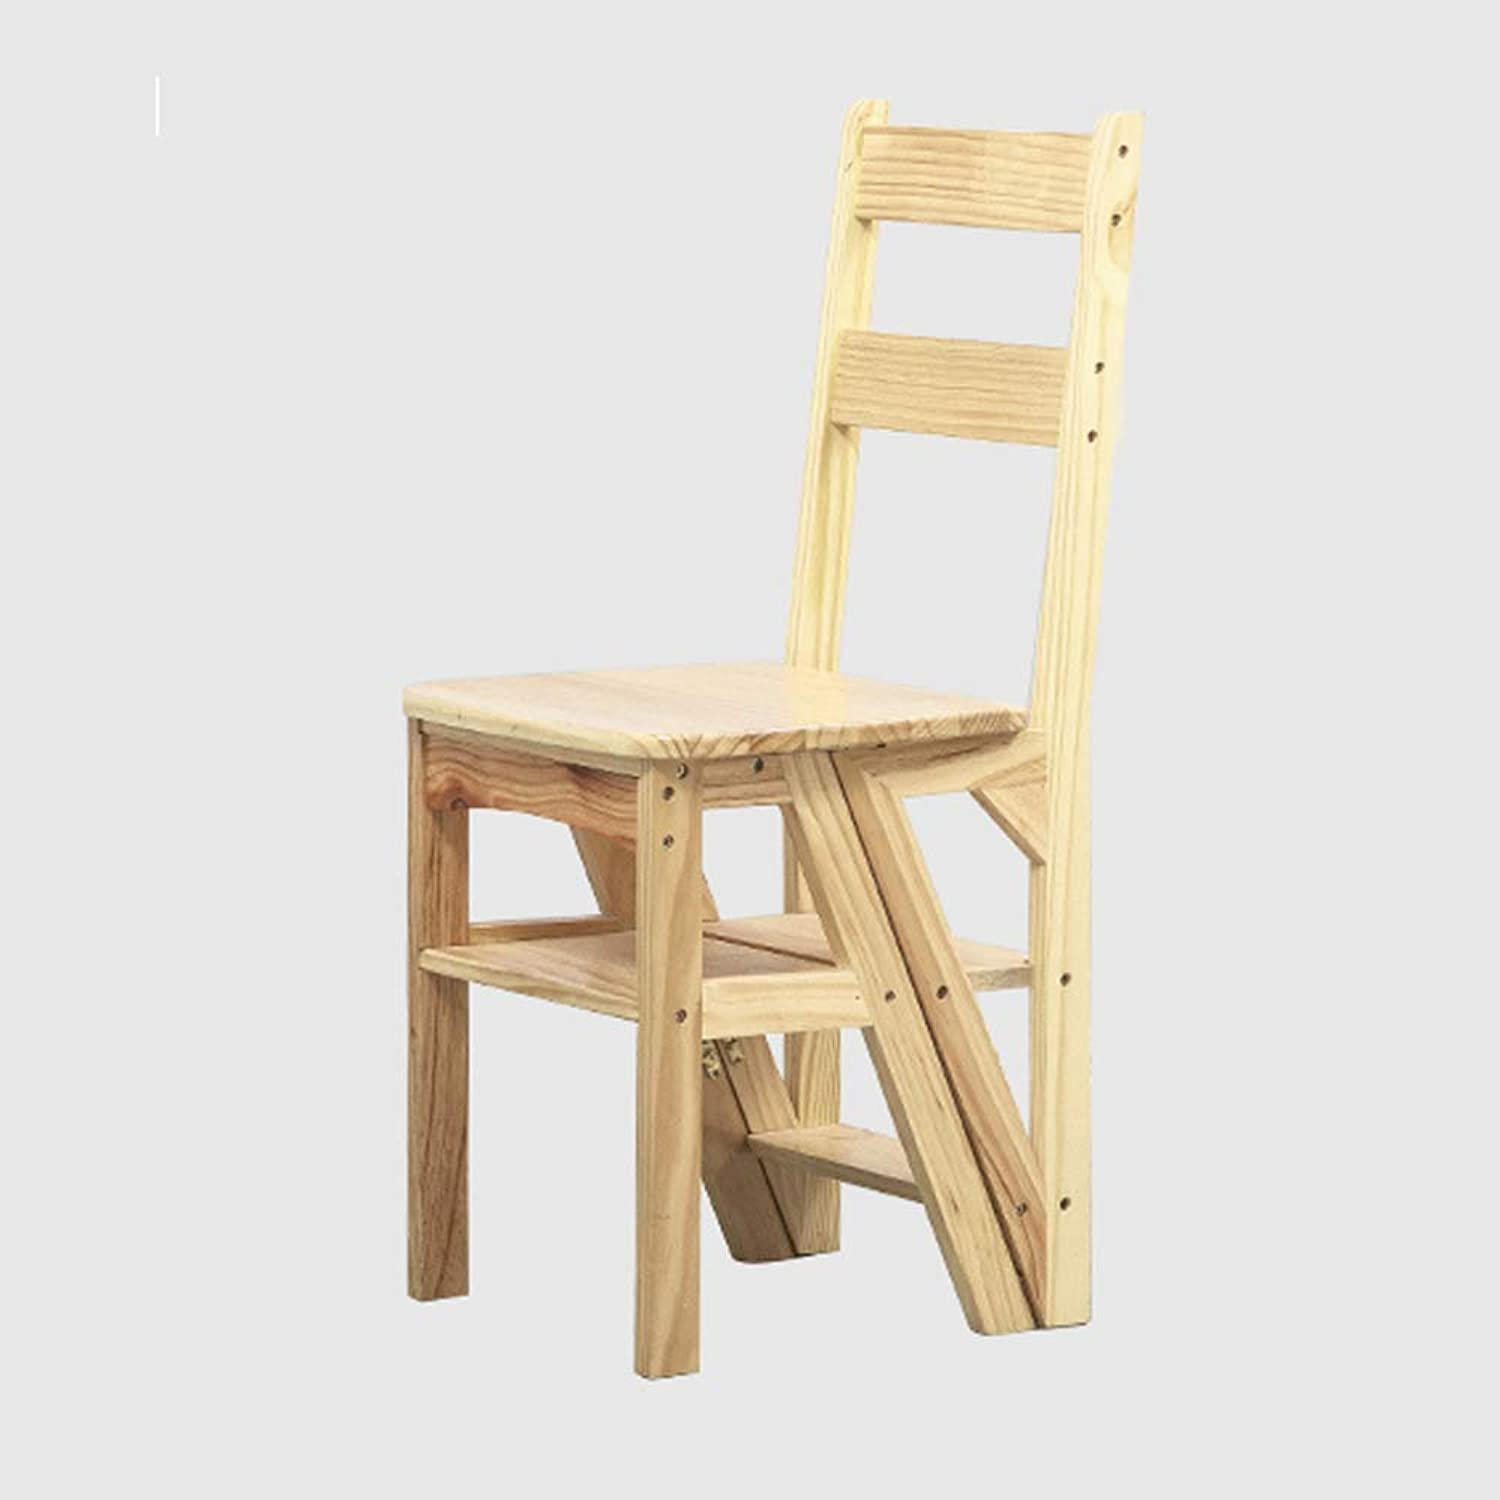 WCS Solid Wood Home Multi-function Folding Ladder Chair Indoor Mobile Indoor Climbing Ladder Dual-use Four-step Ladder Stool Climbing Ladder 40×39×90cm (color   Wood color)